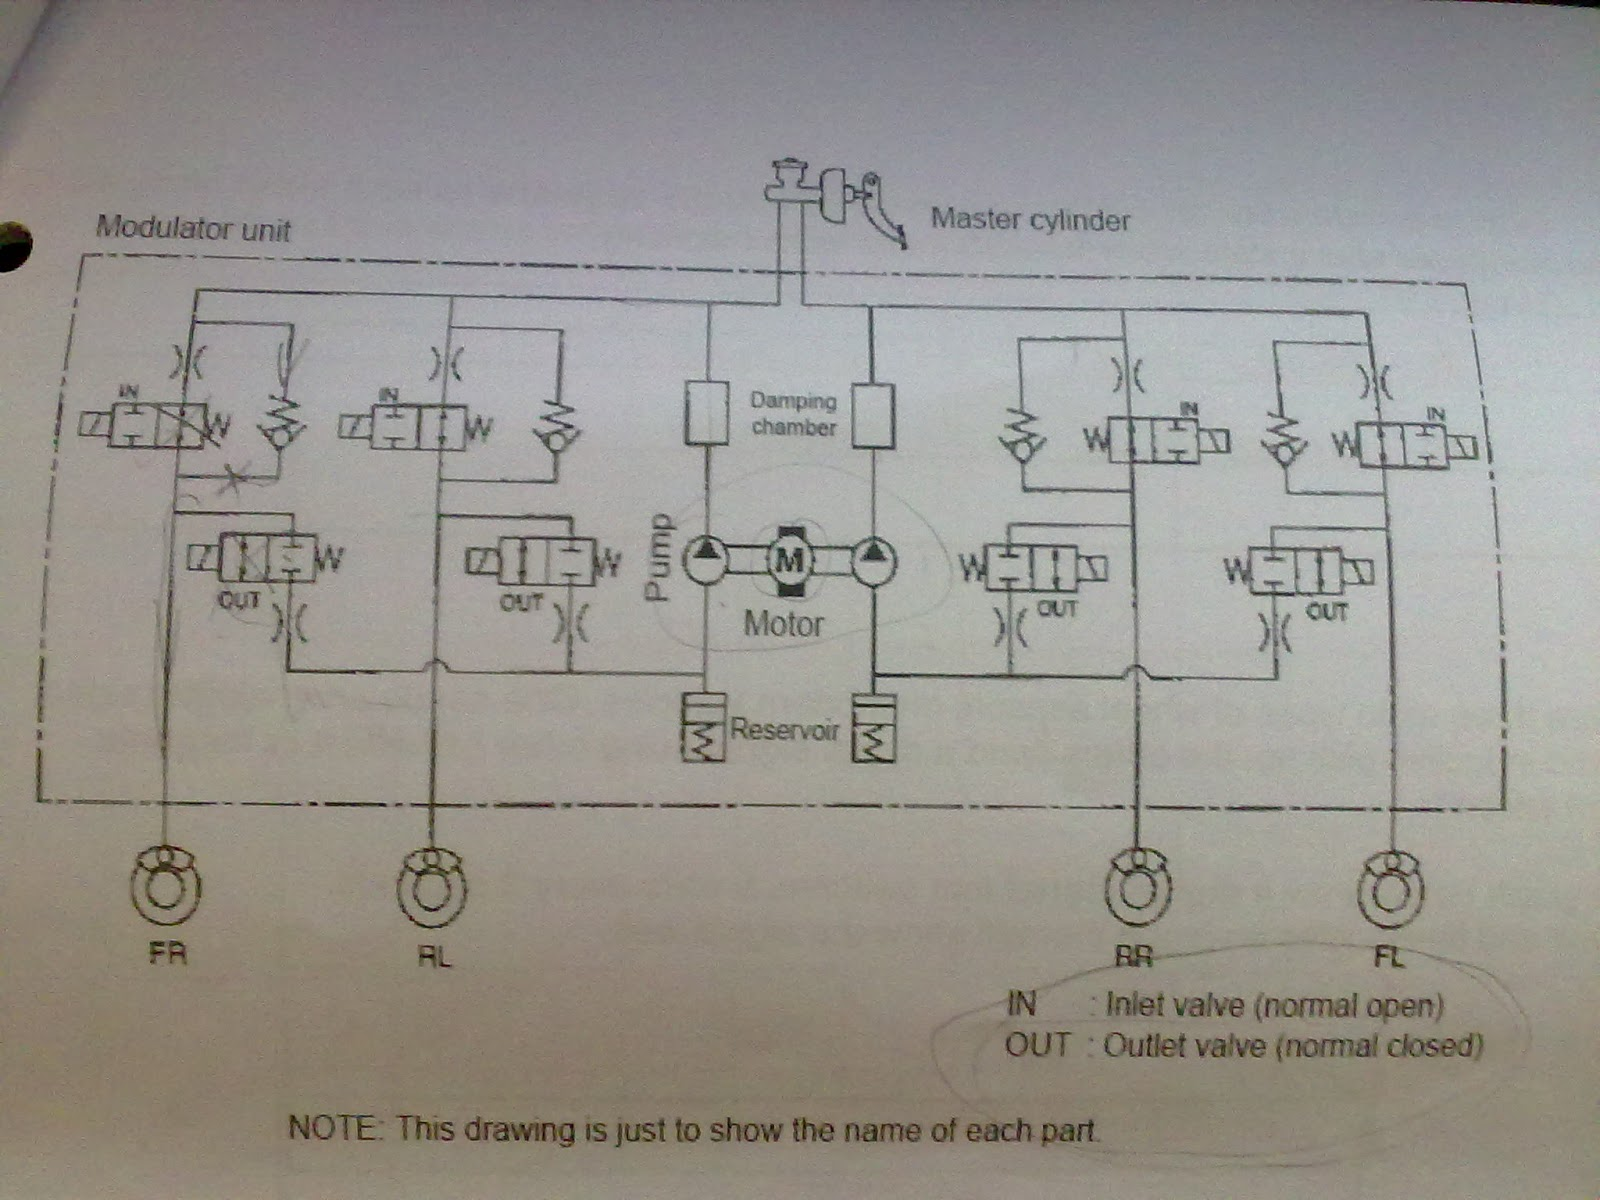 Eaton Abs System Wiring Schematic Diagram Telma Diagrams Drawing